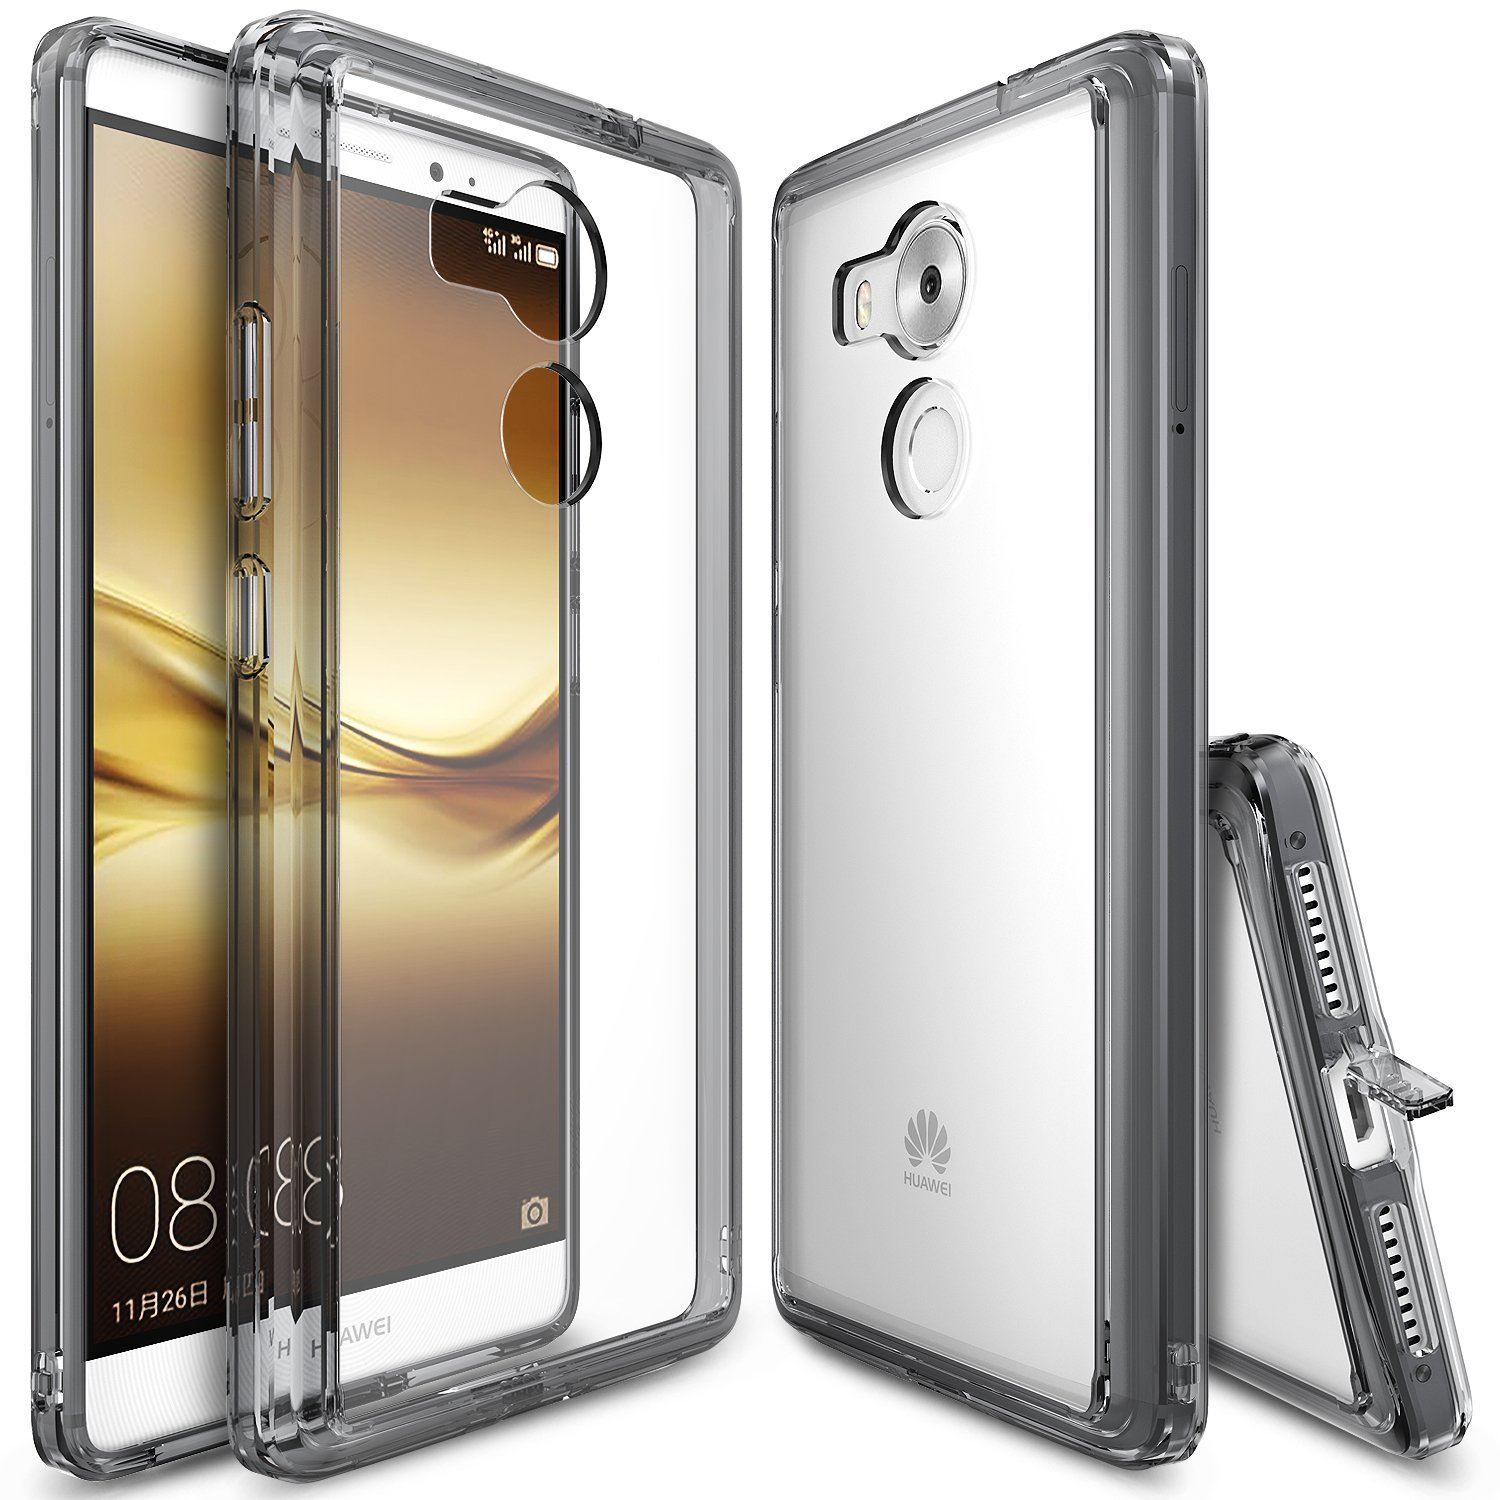 Huawei Mate 8 Case, Ringke [Smoke Black] FUSION Series Absorb Shock TPU Bumper Clear Case